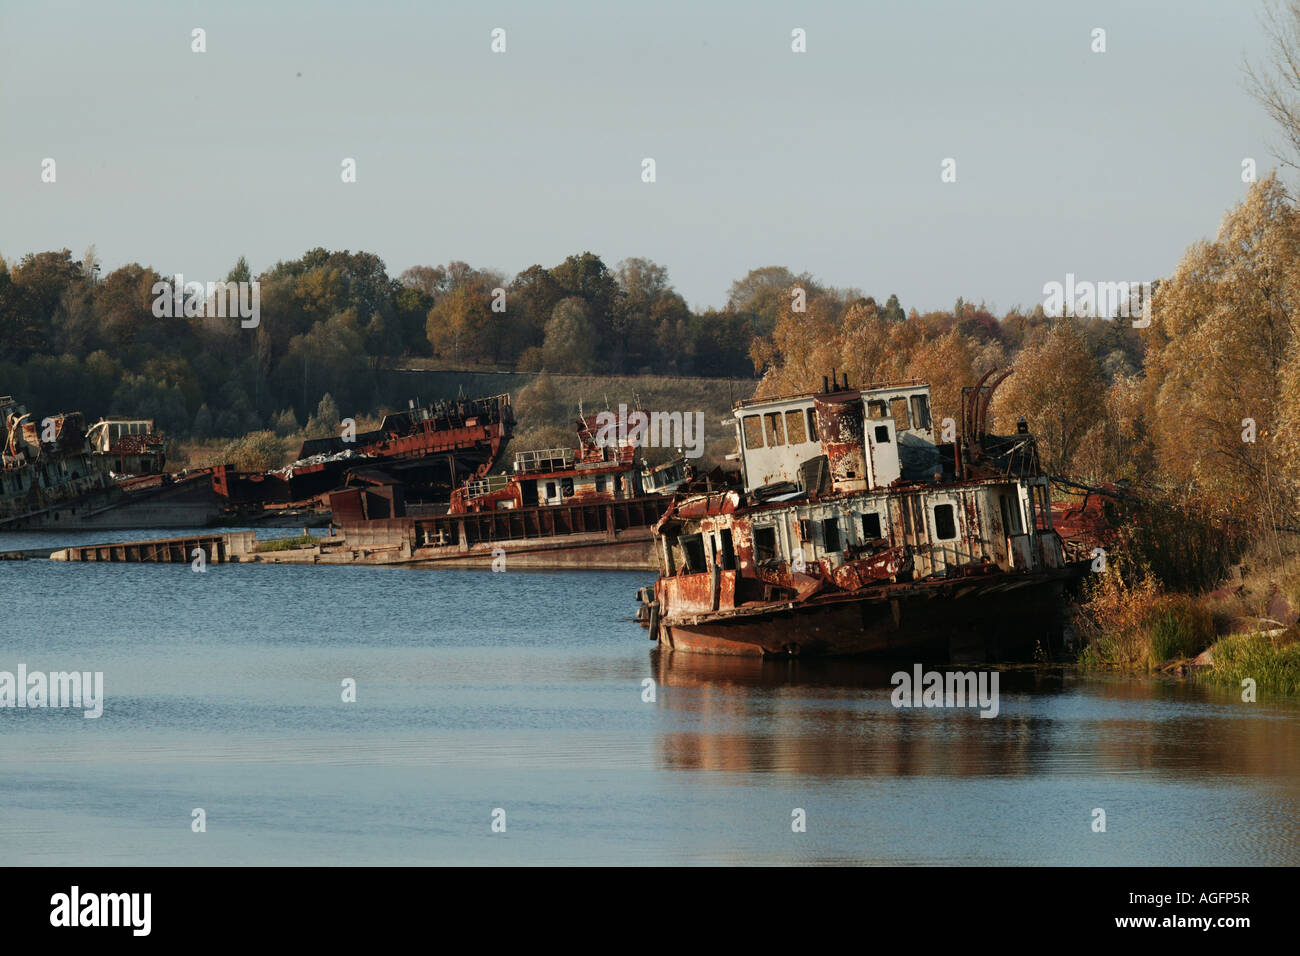 Abandoned barge used in cleanup of chernobyl nuclear disaster - Stock Image